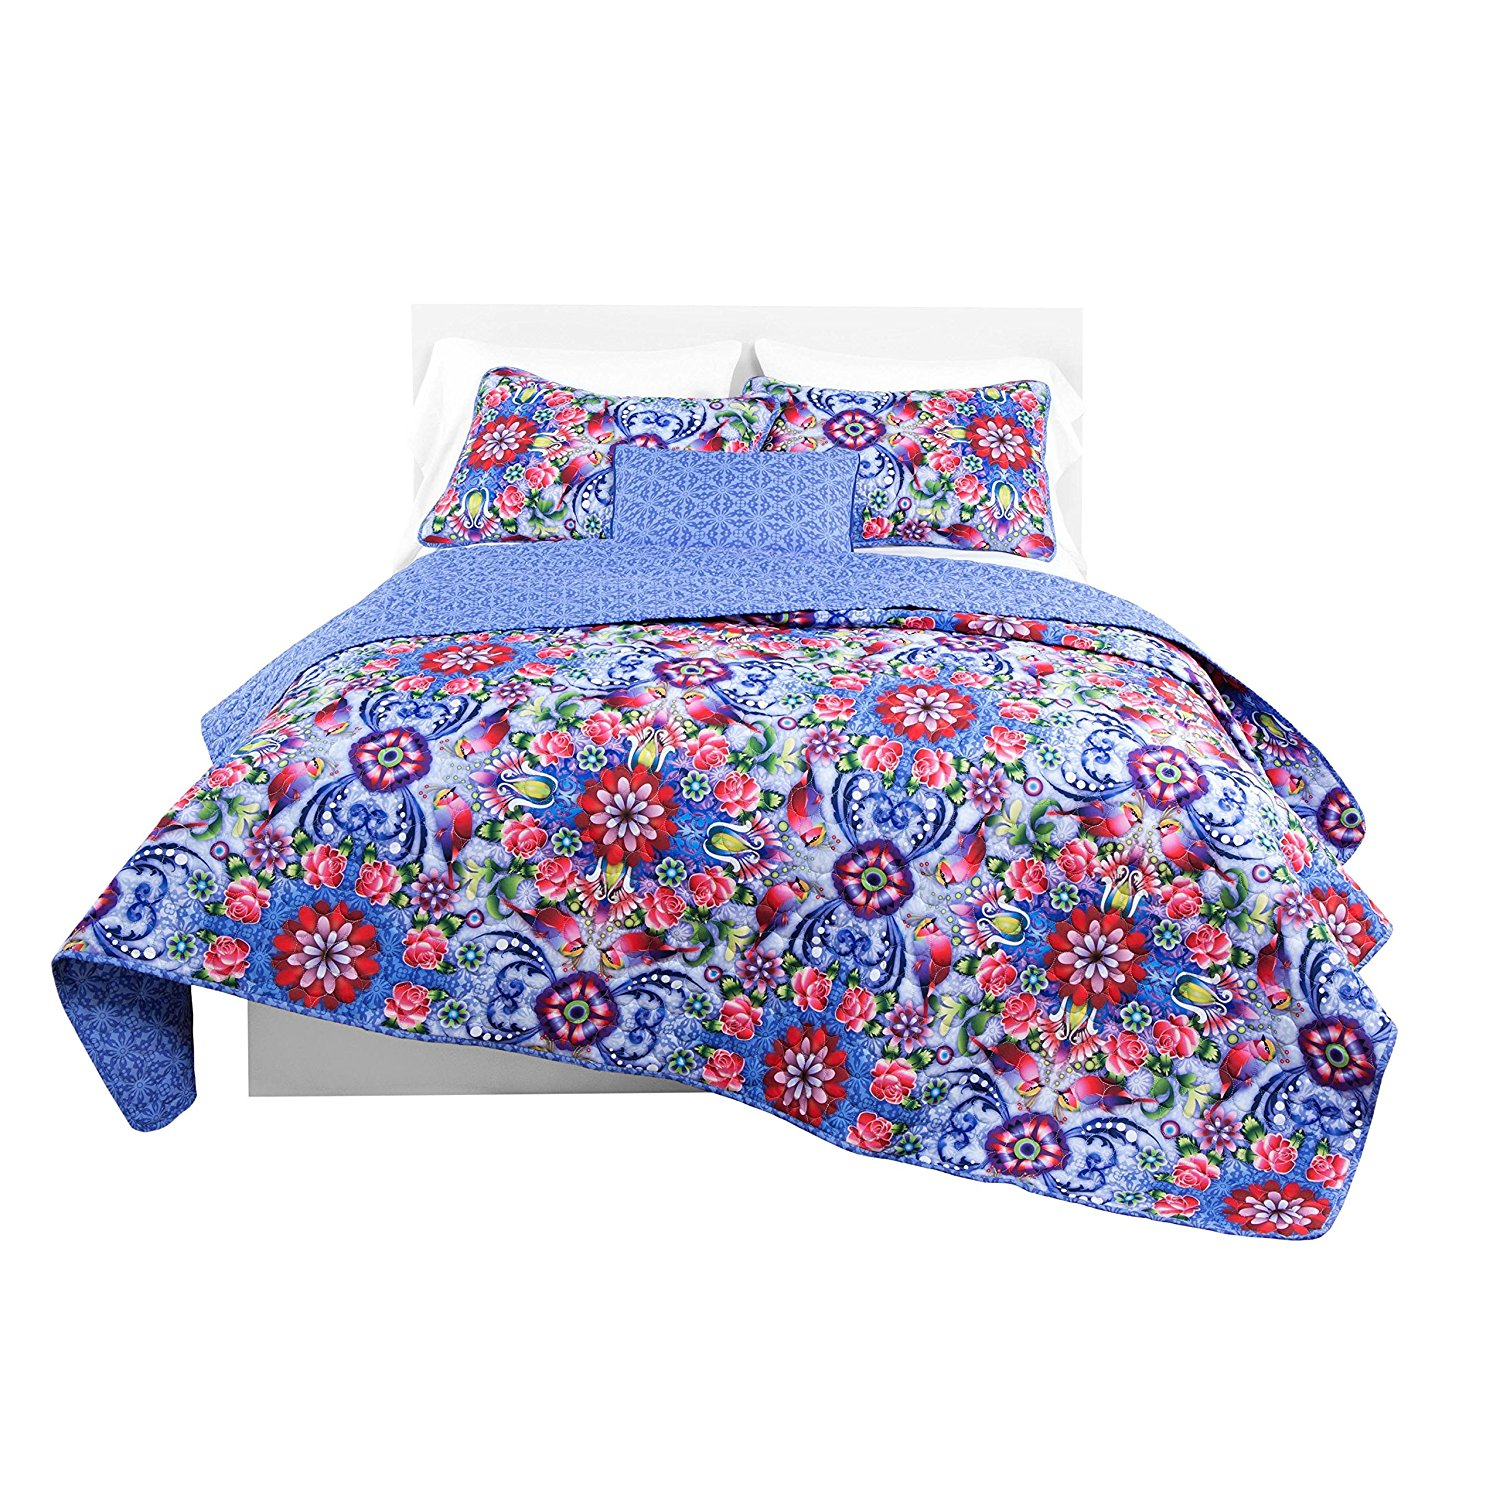 un 3 Piece Girls Pink Purple Blue Pink Red Intricate Floral Quilt King Set, Beautiful All Over Geometric Flowers Bohemian Bedding, Vibrant Bright Scroll Rose Daisy Paisley Flower Themed Pattern